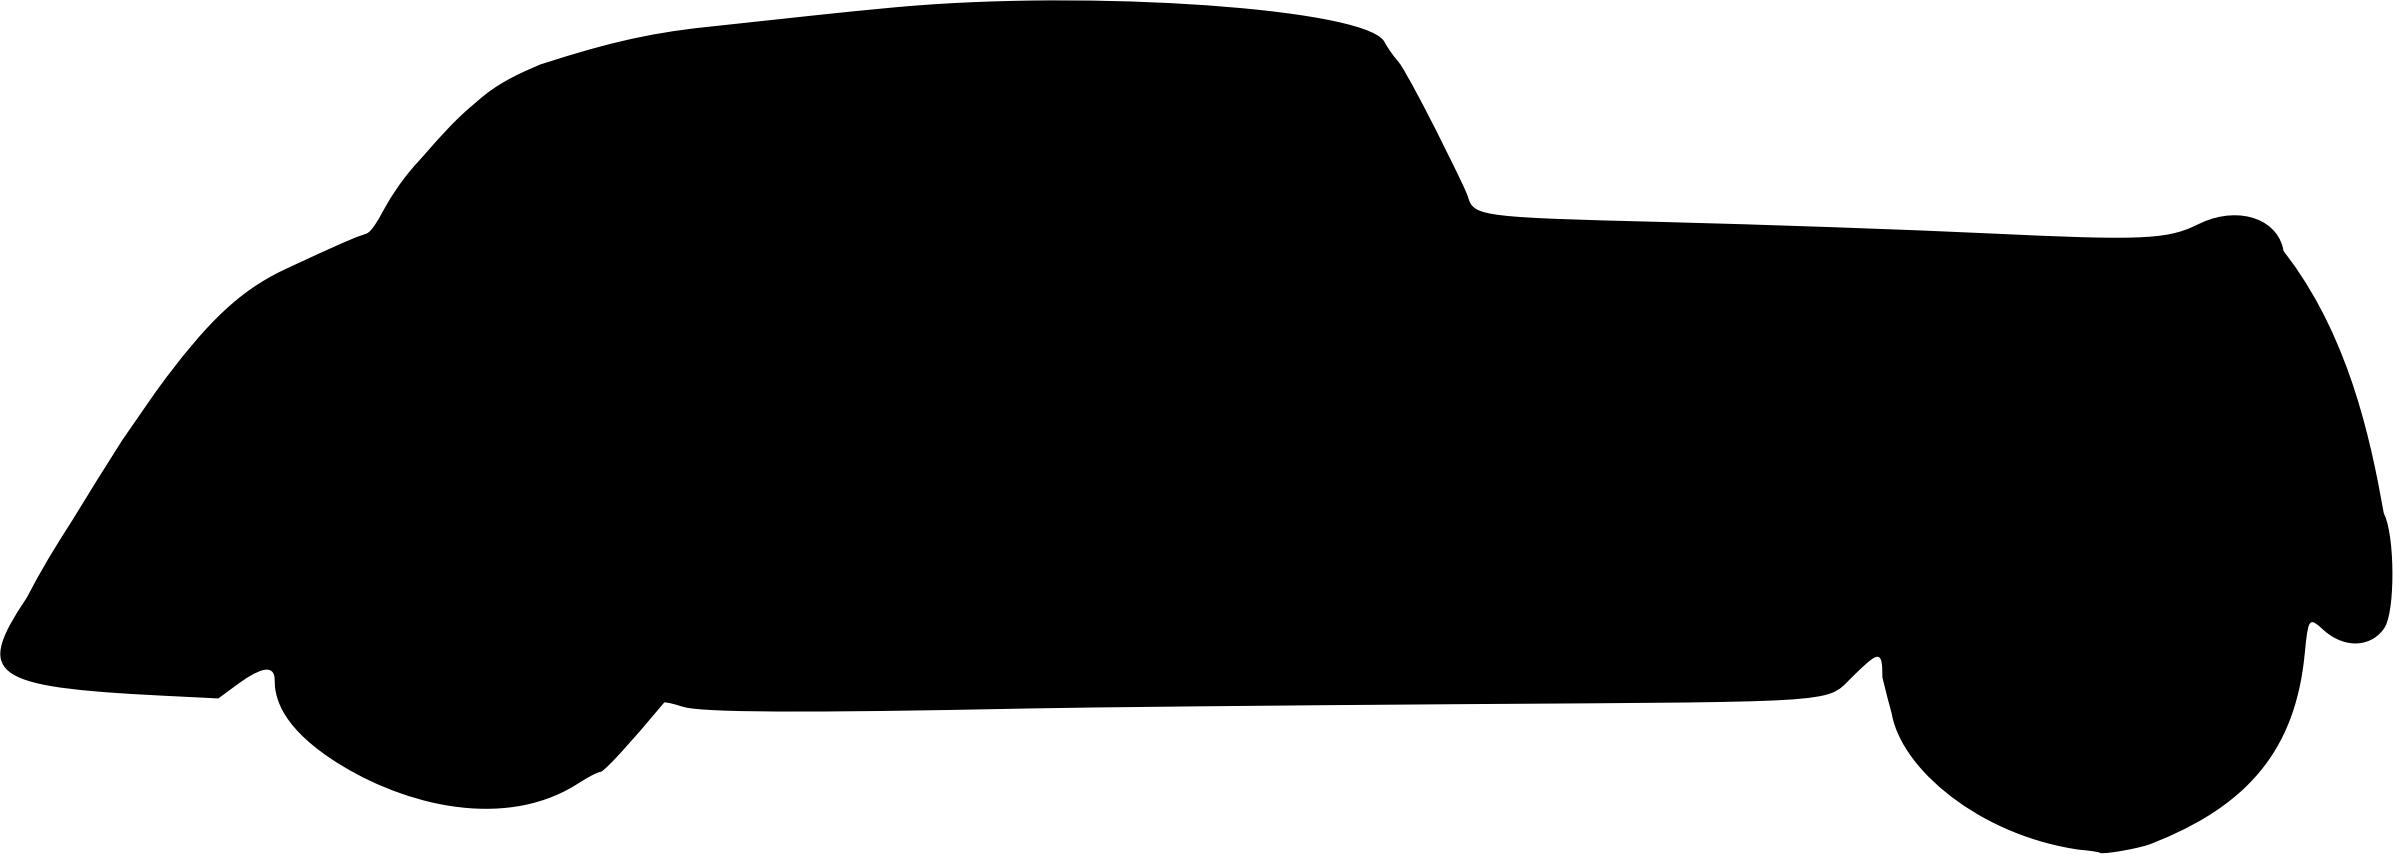 2393x854 Car Silhouette 4 Icons Png